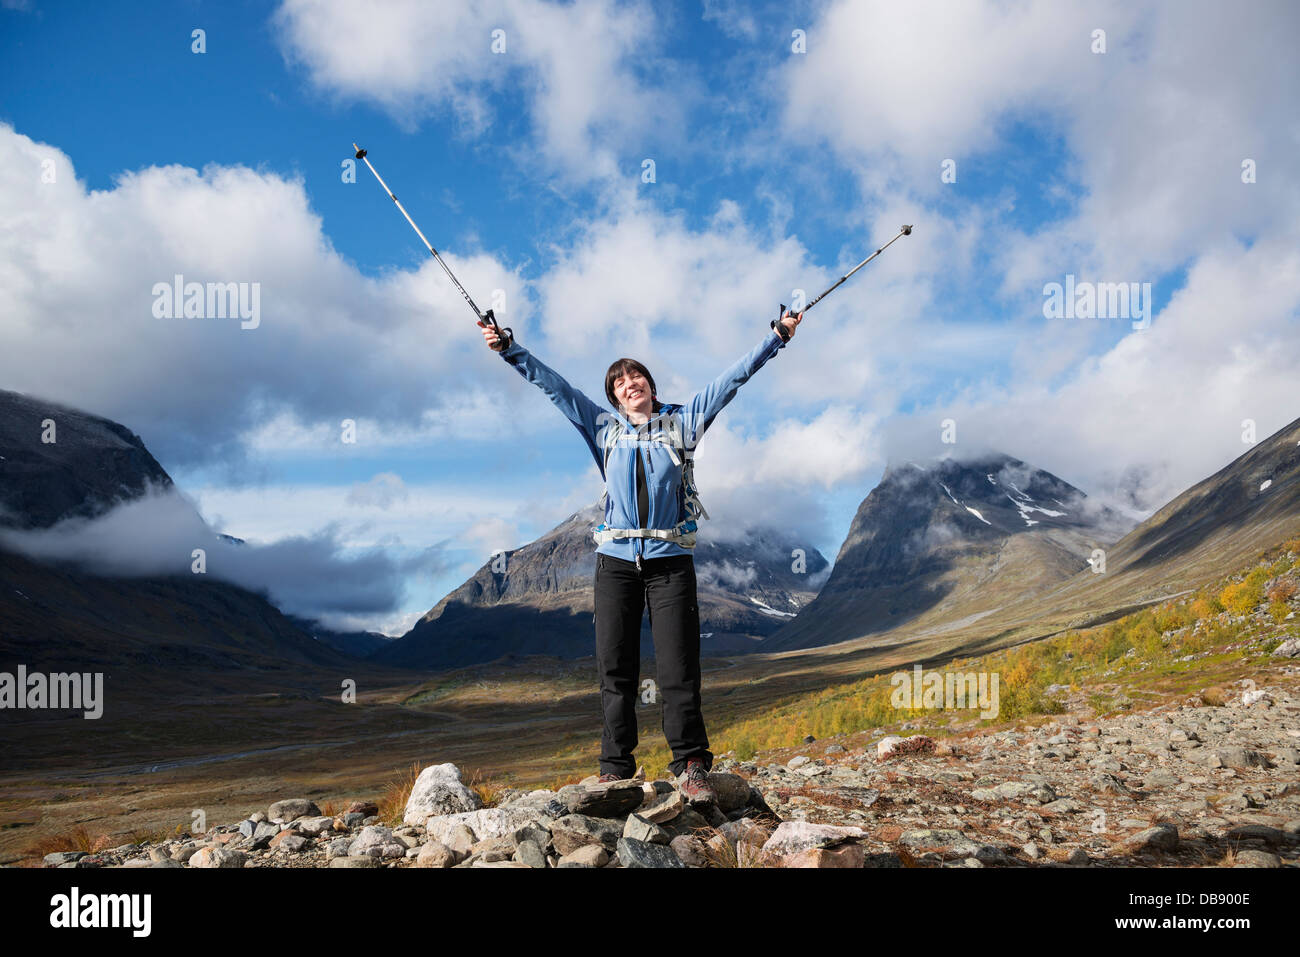 Female hiker with mountains in distance, Ladtjovagge, near Kebnekaise Fjällstation, Lappland, Sweden - Stock Image